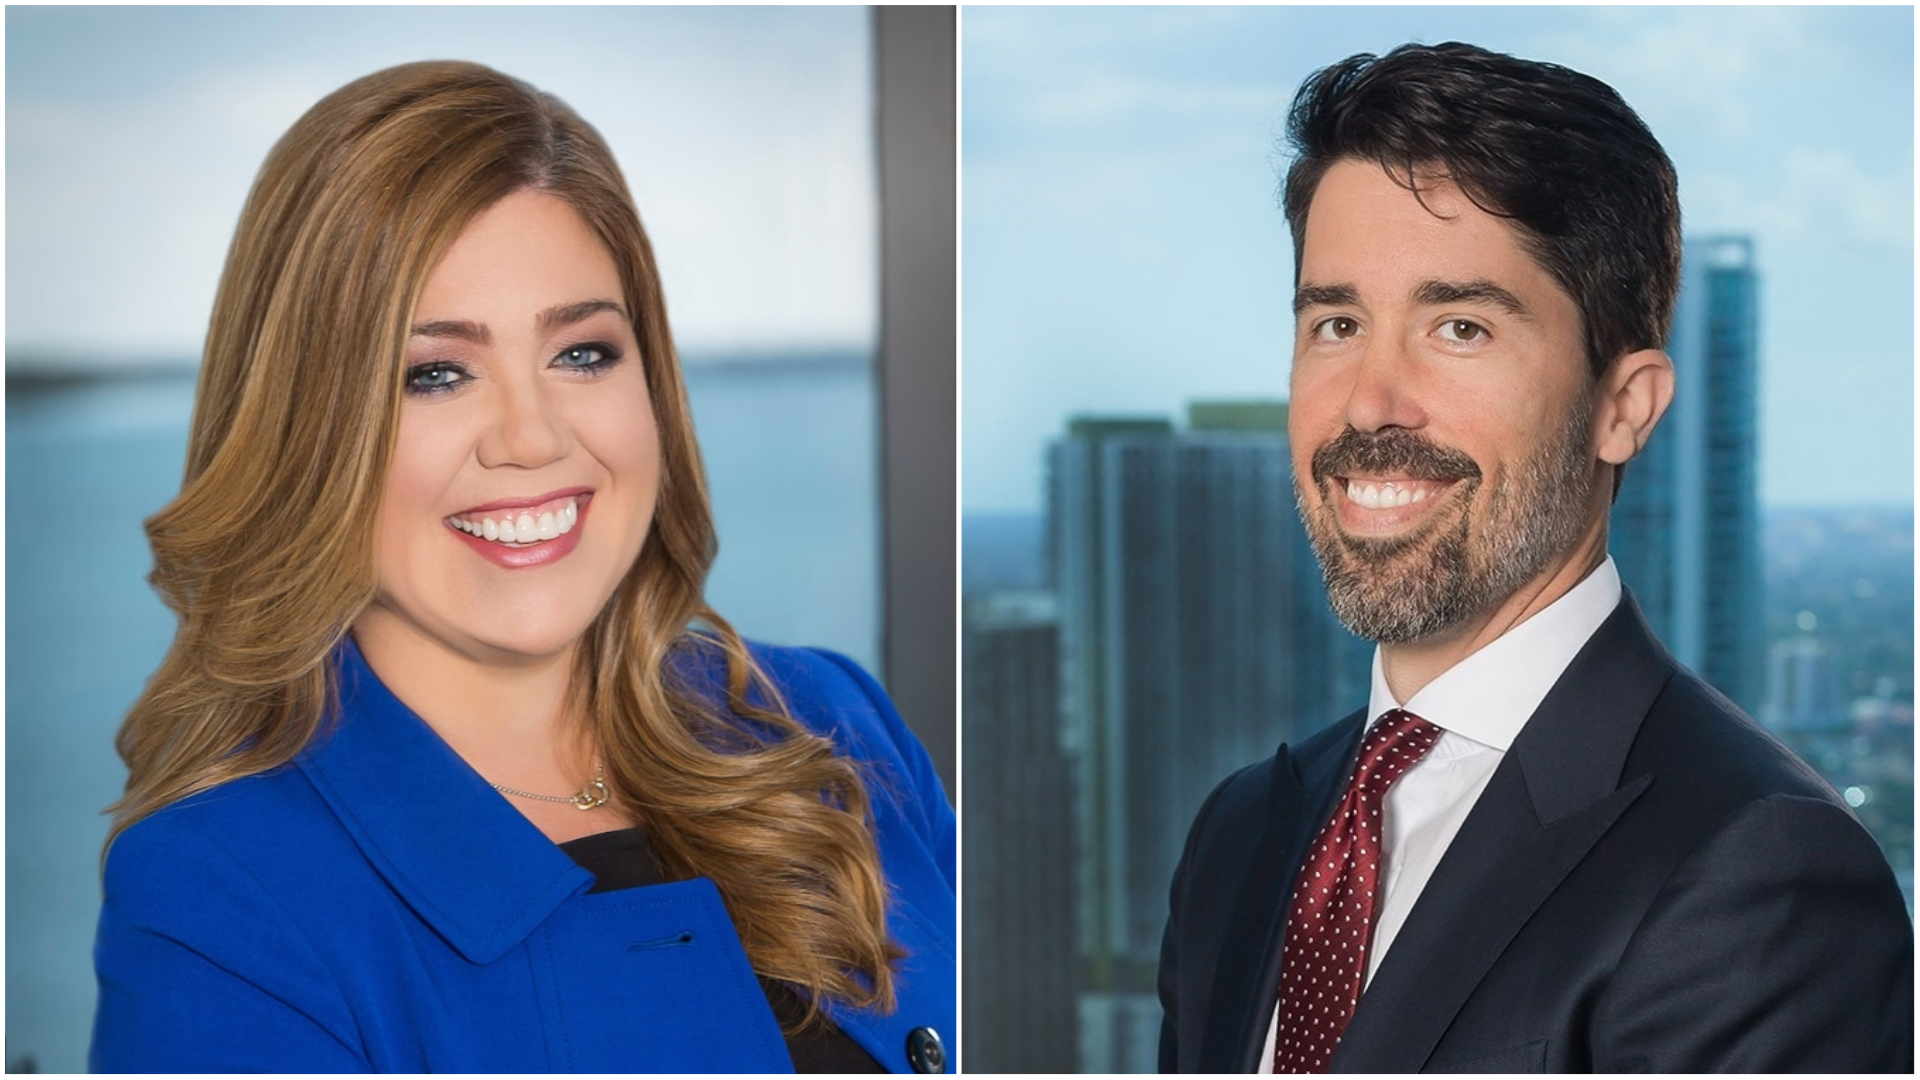 Sequor Law adds two partners from GrayRobinson in Miami